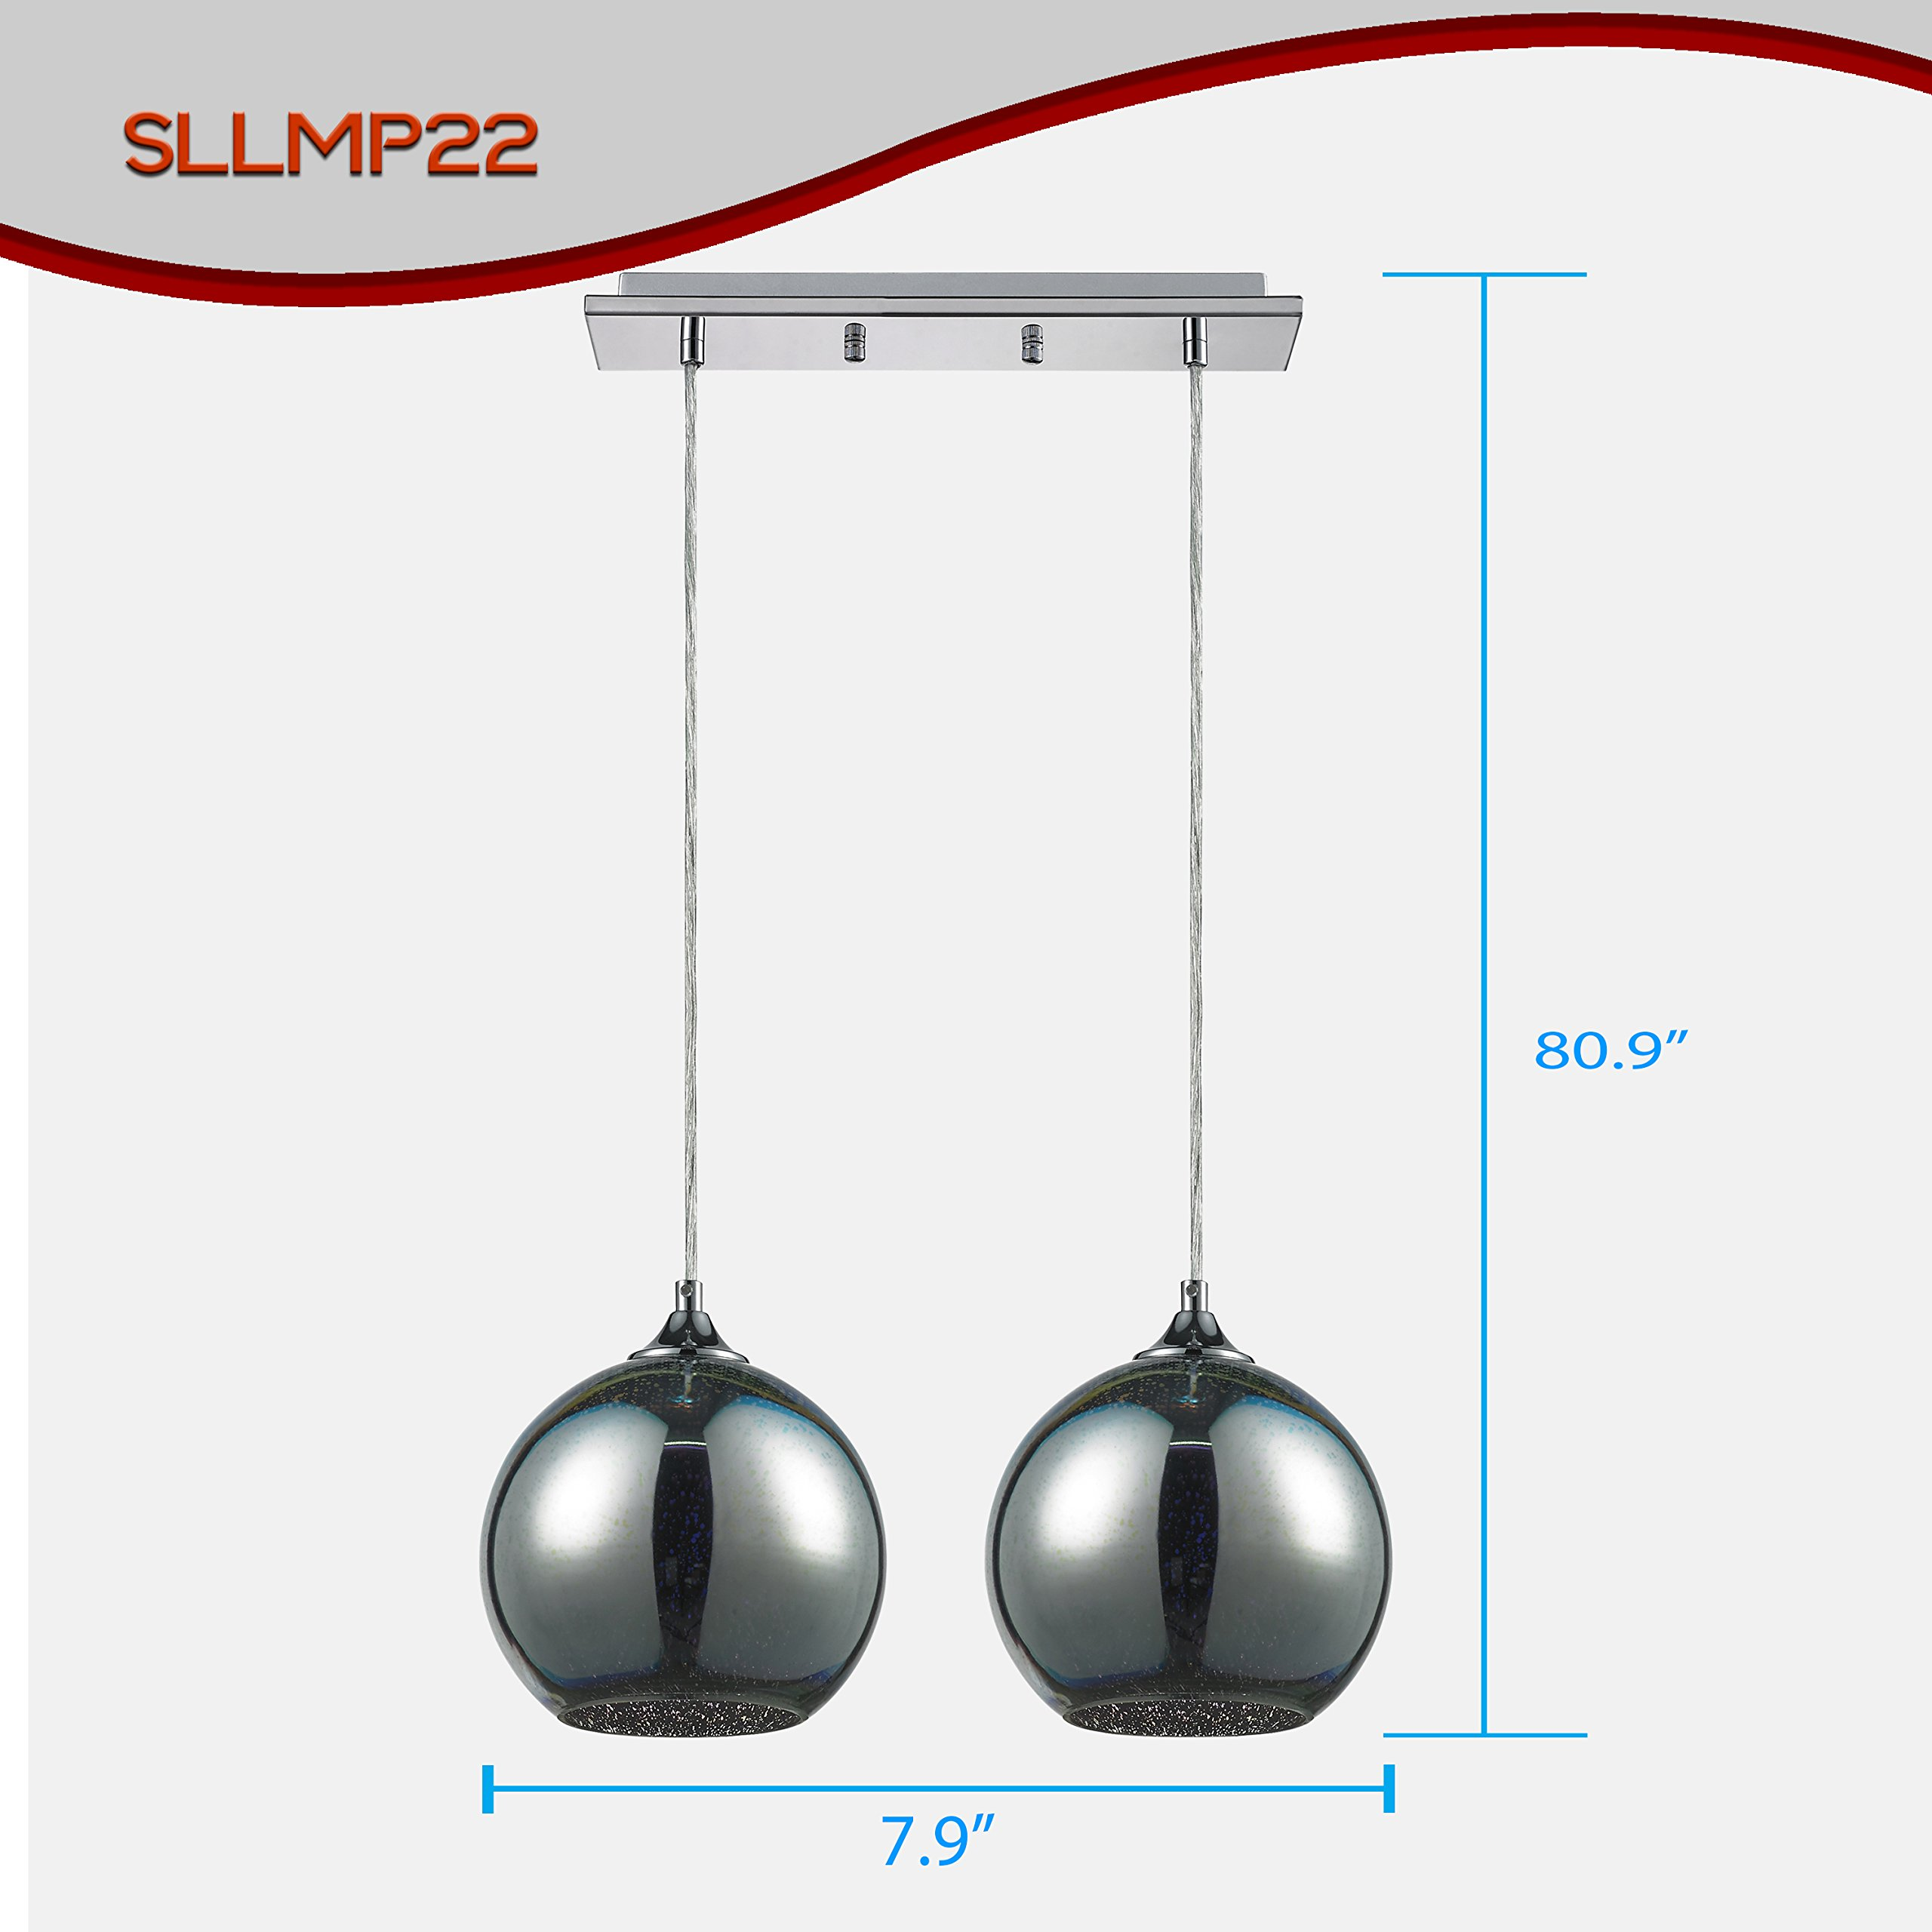 "SereneLife Home Lighting Fixture - Dual Pendant Hanging Lamp Ceiling Light with 2 7.87"" Circular Sphere Shaped Dome Globes, Sculpted Glass Accent, Adjustable Length and Screw-in Bulb Socket (SLLMP22) by SereneLife (Image #3)"